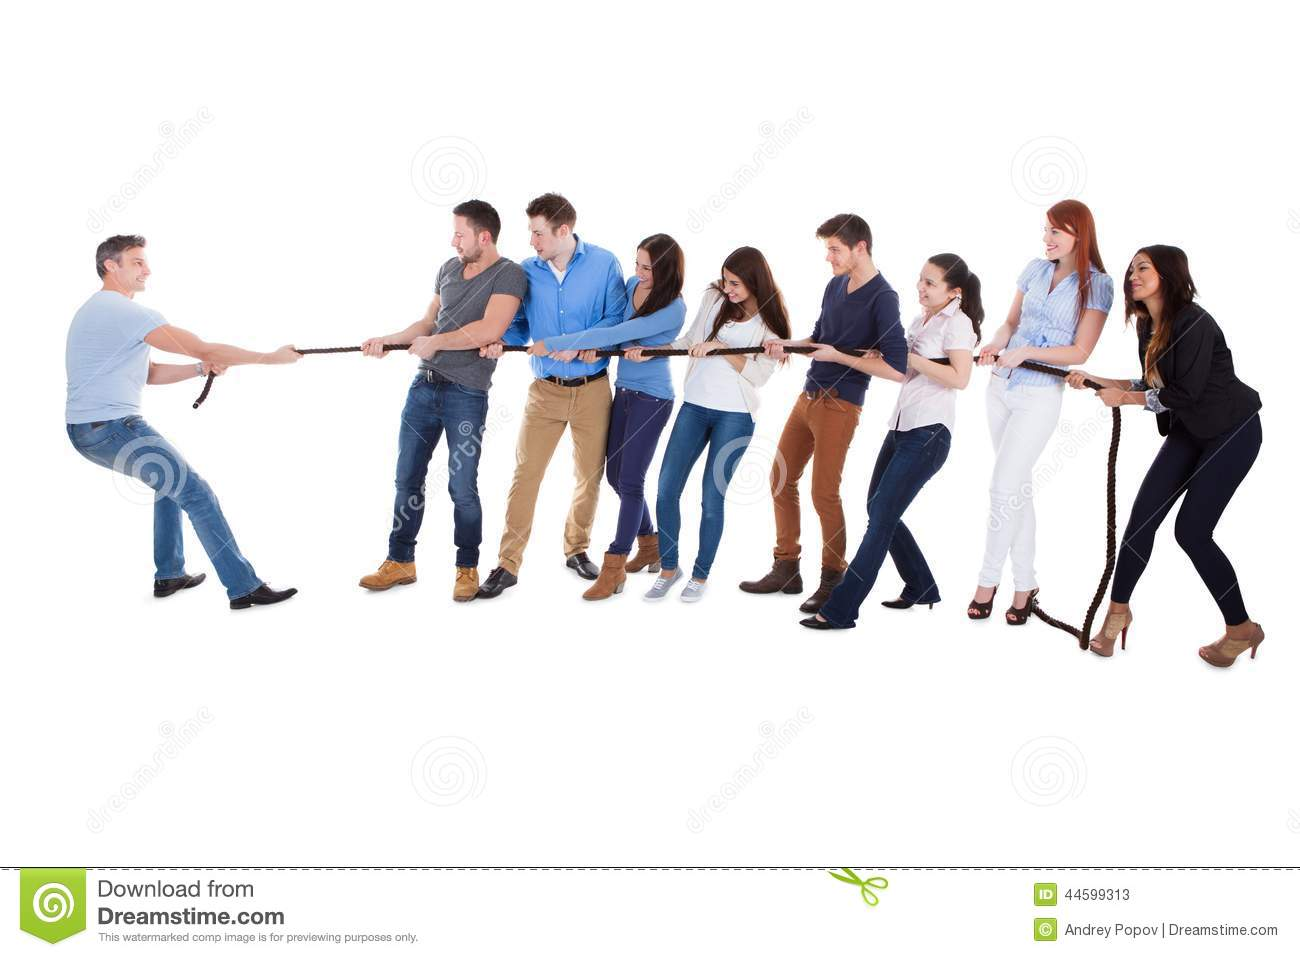 dealing with externality in a business organization The external factors that affect a business are the variables which influence the operation of a company despite their innate inability to be changed.